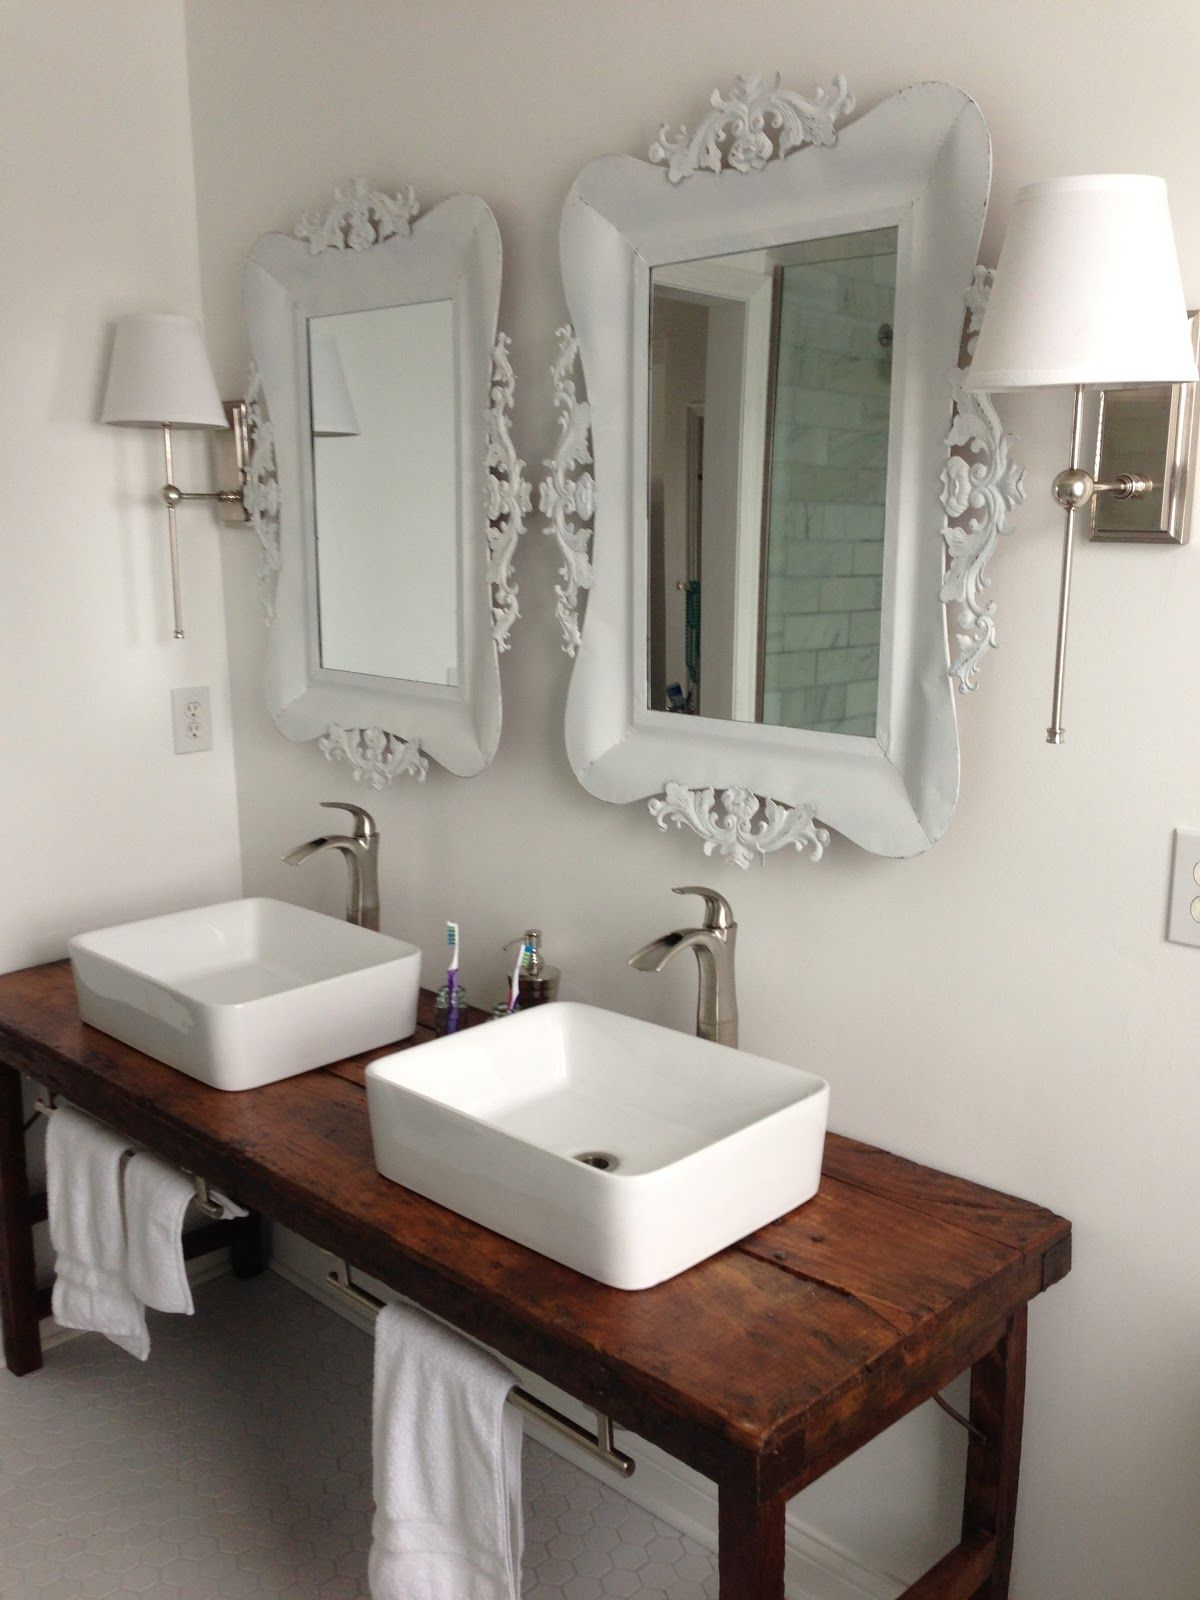 Bathroom Designs Vessel Sinks white bathroom with vessel sinks and wood table as vanity like the